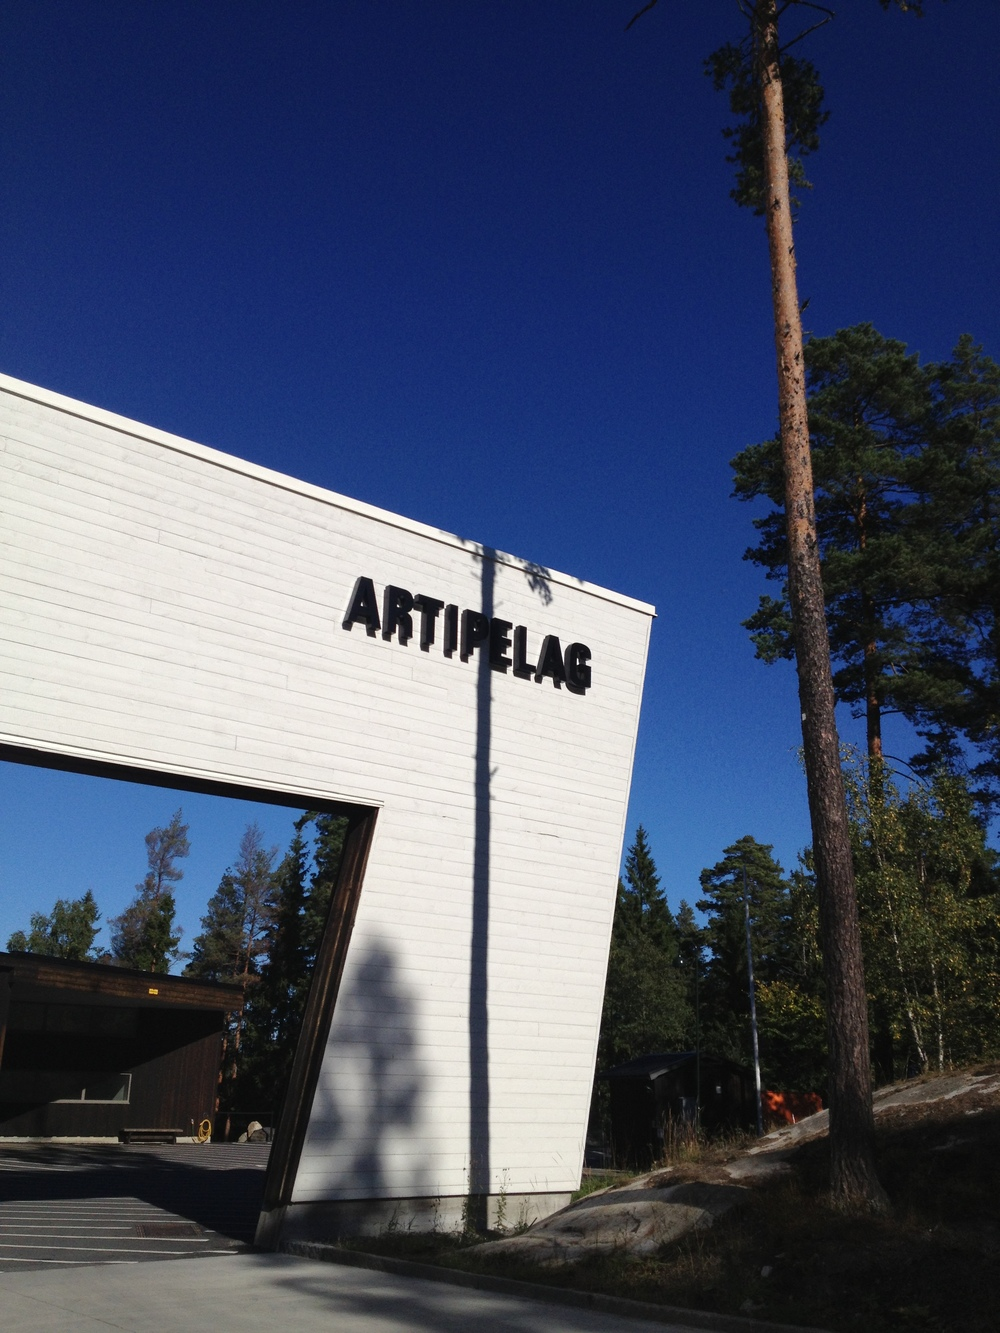 artipelag stockholm weekend guide hello getaway